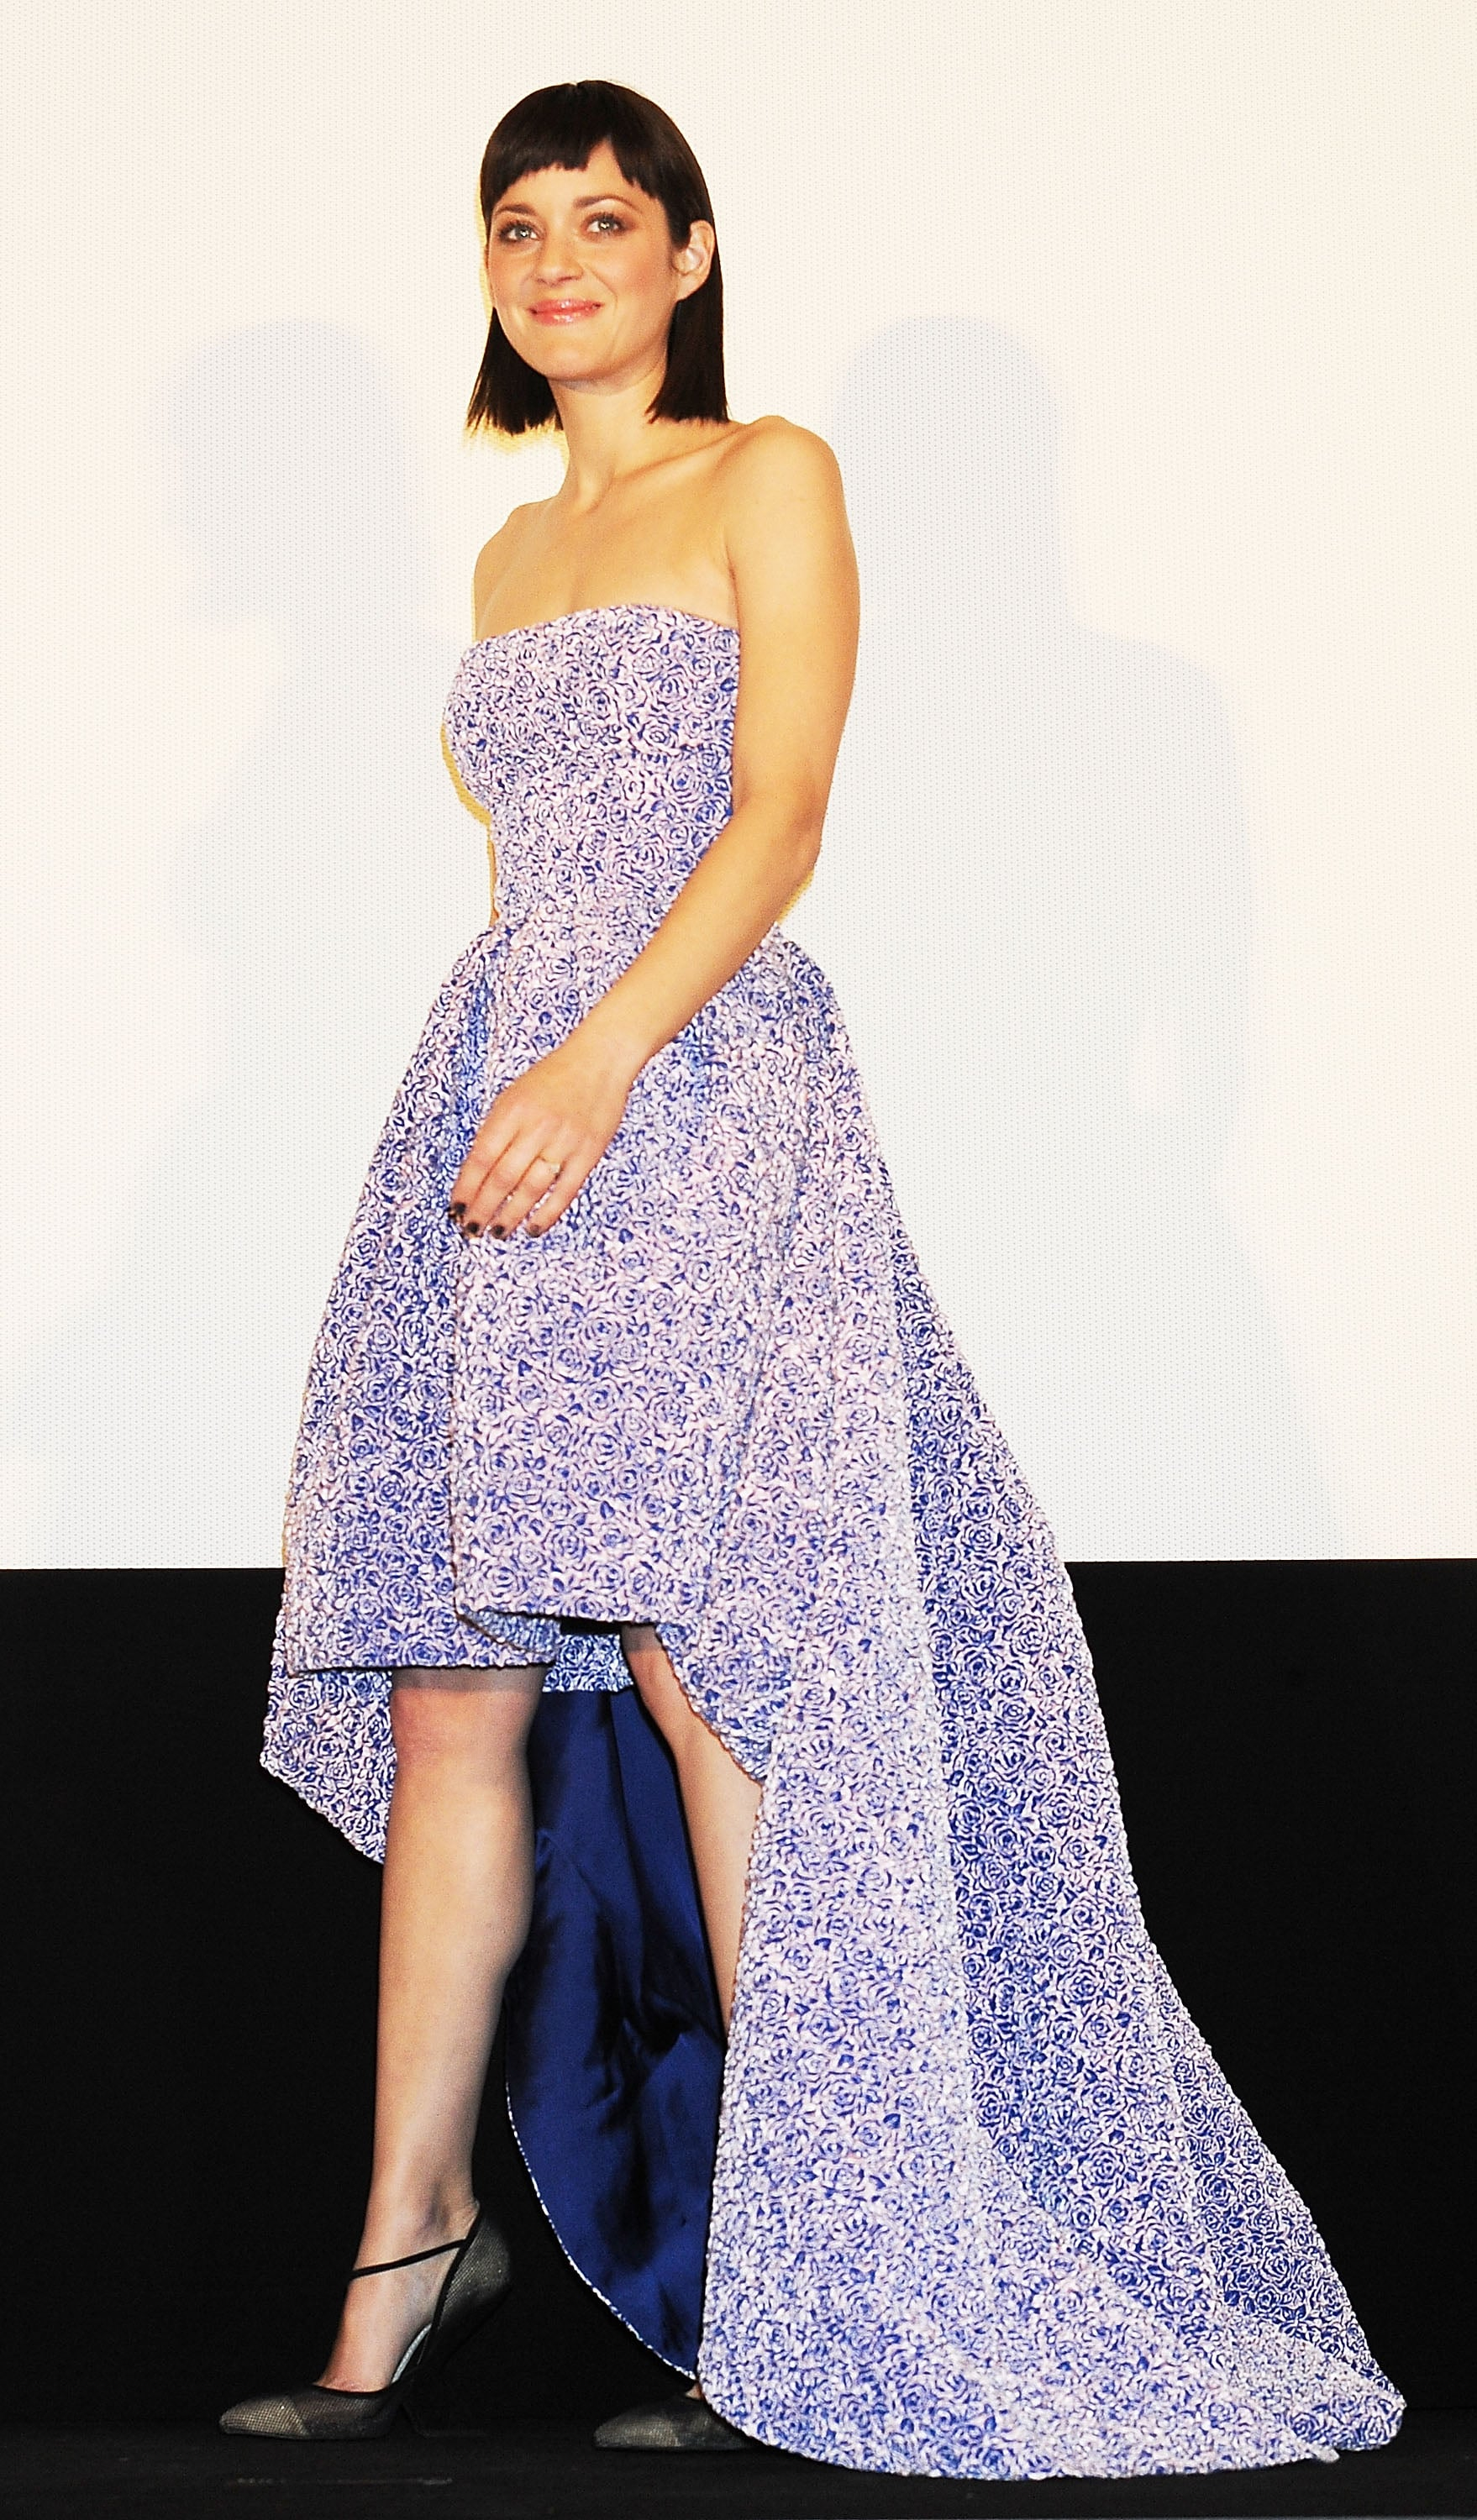 Equal parts modern and ethereal, Marion Cotillard turned heads in a Christian Dior gown with a striking high-low hemline at the premiere of Rust and Bone in Tokyo.